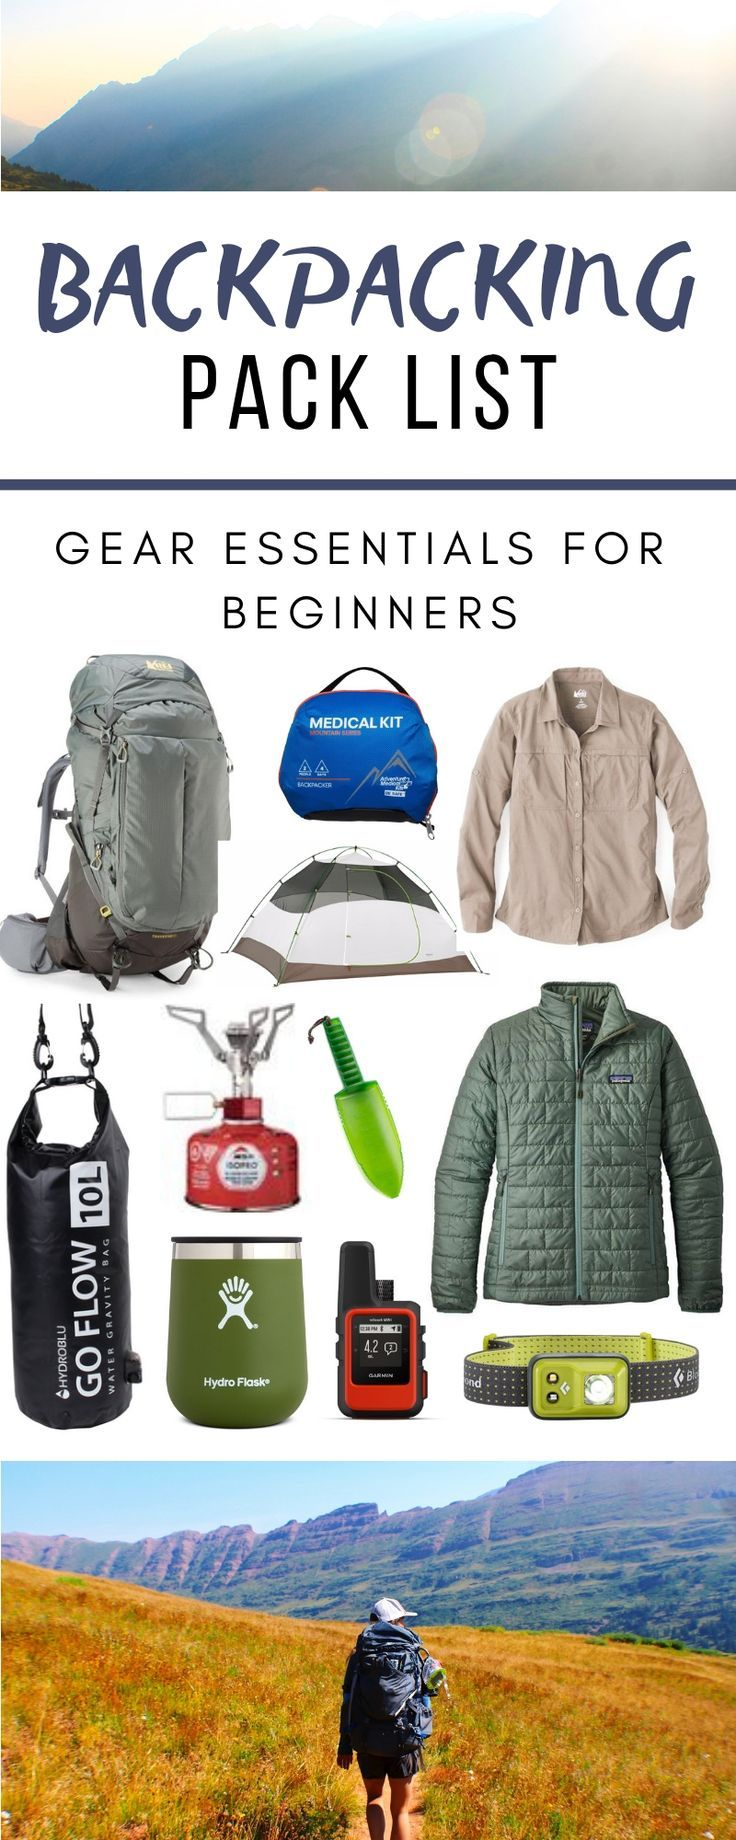 Photo of Backpacking Pack List: Gear Essentials For Beginners • Nomads With A Purpose